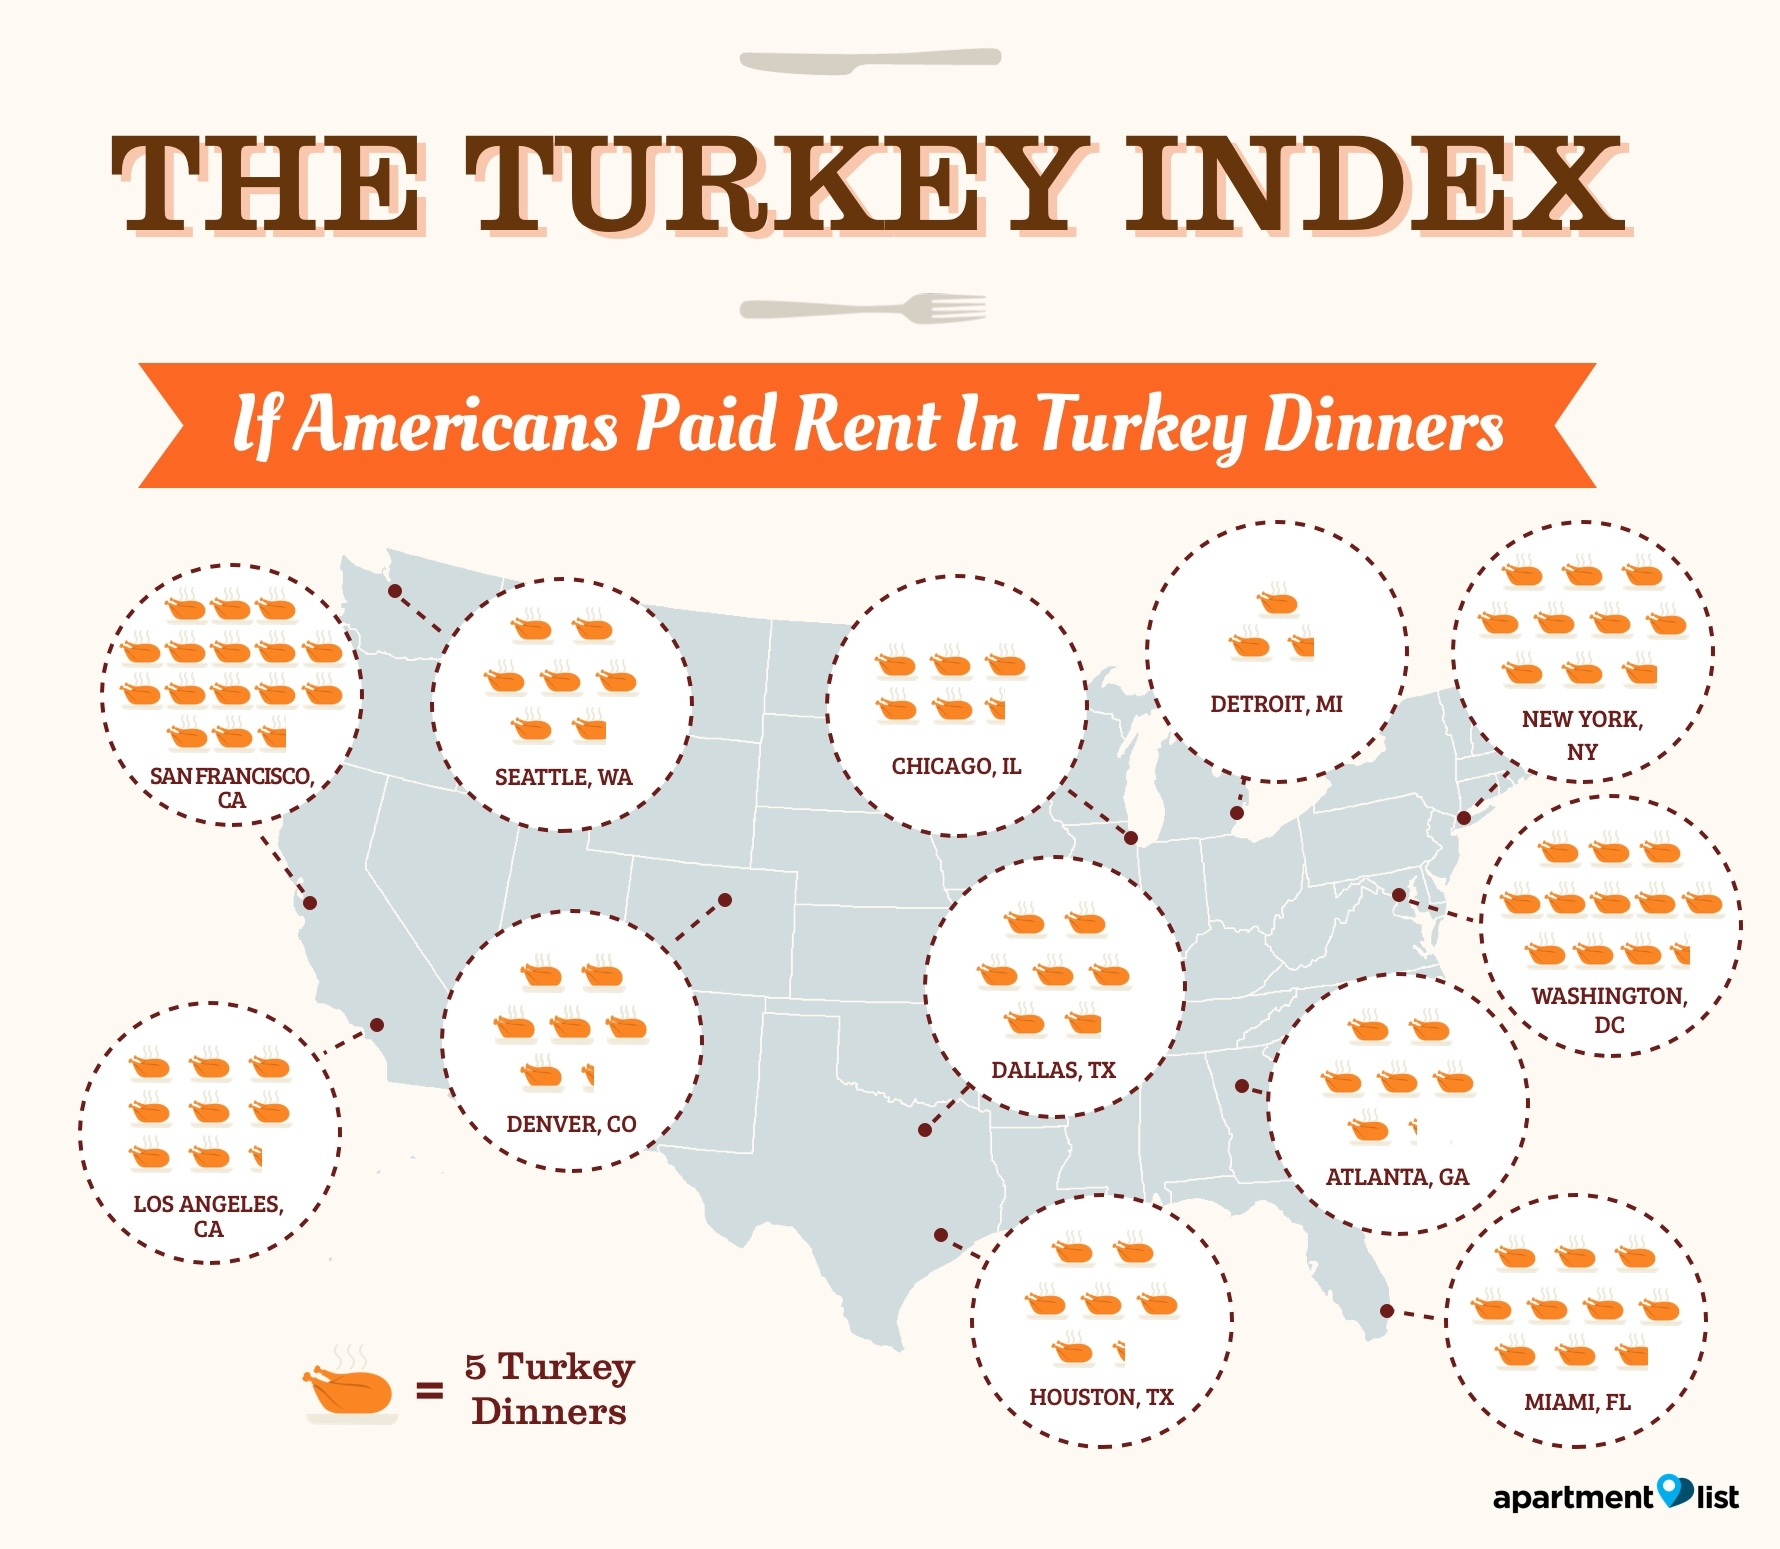 how many turkey dinners does it take to pay rent in chicago?